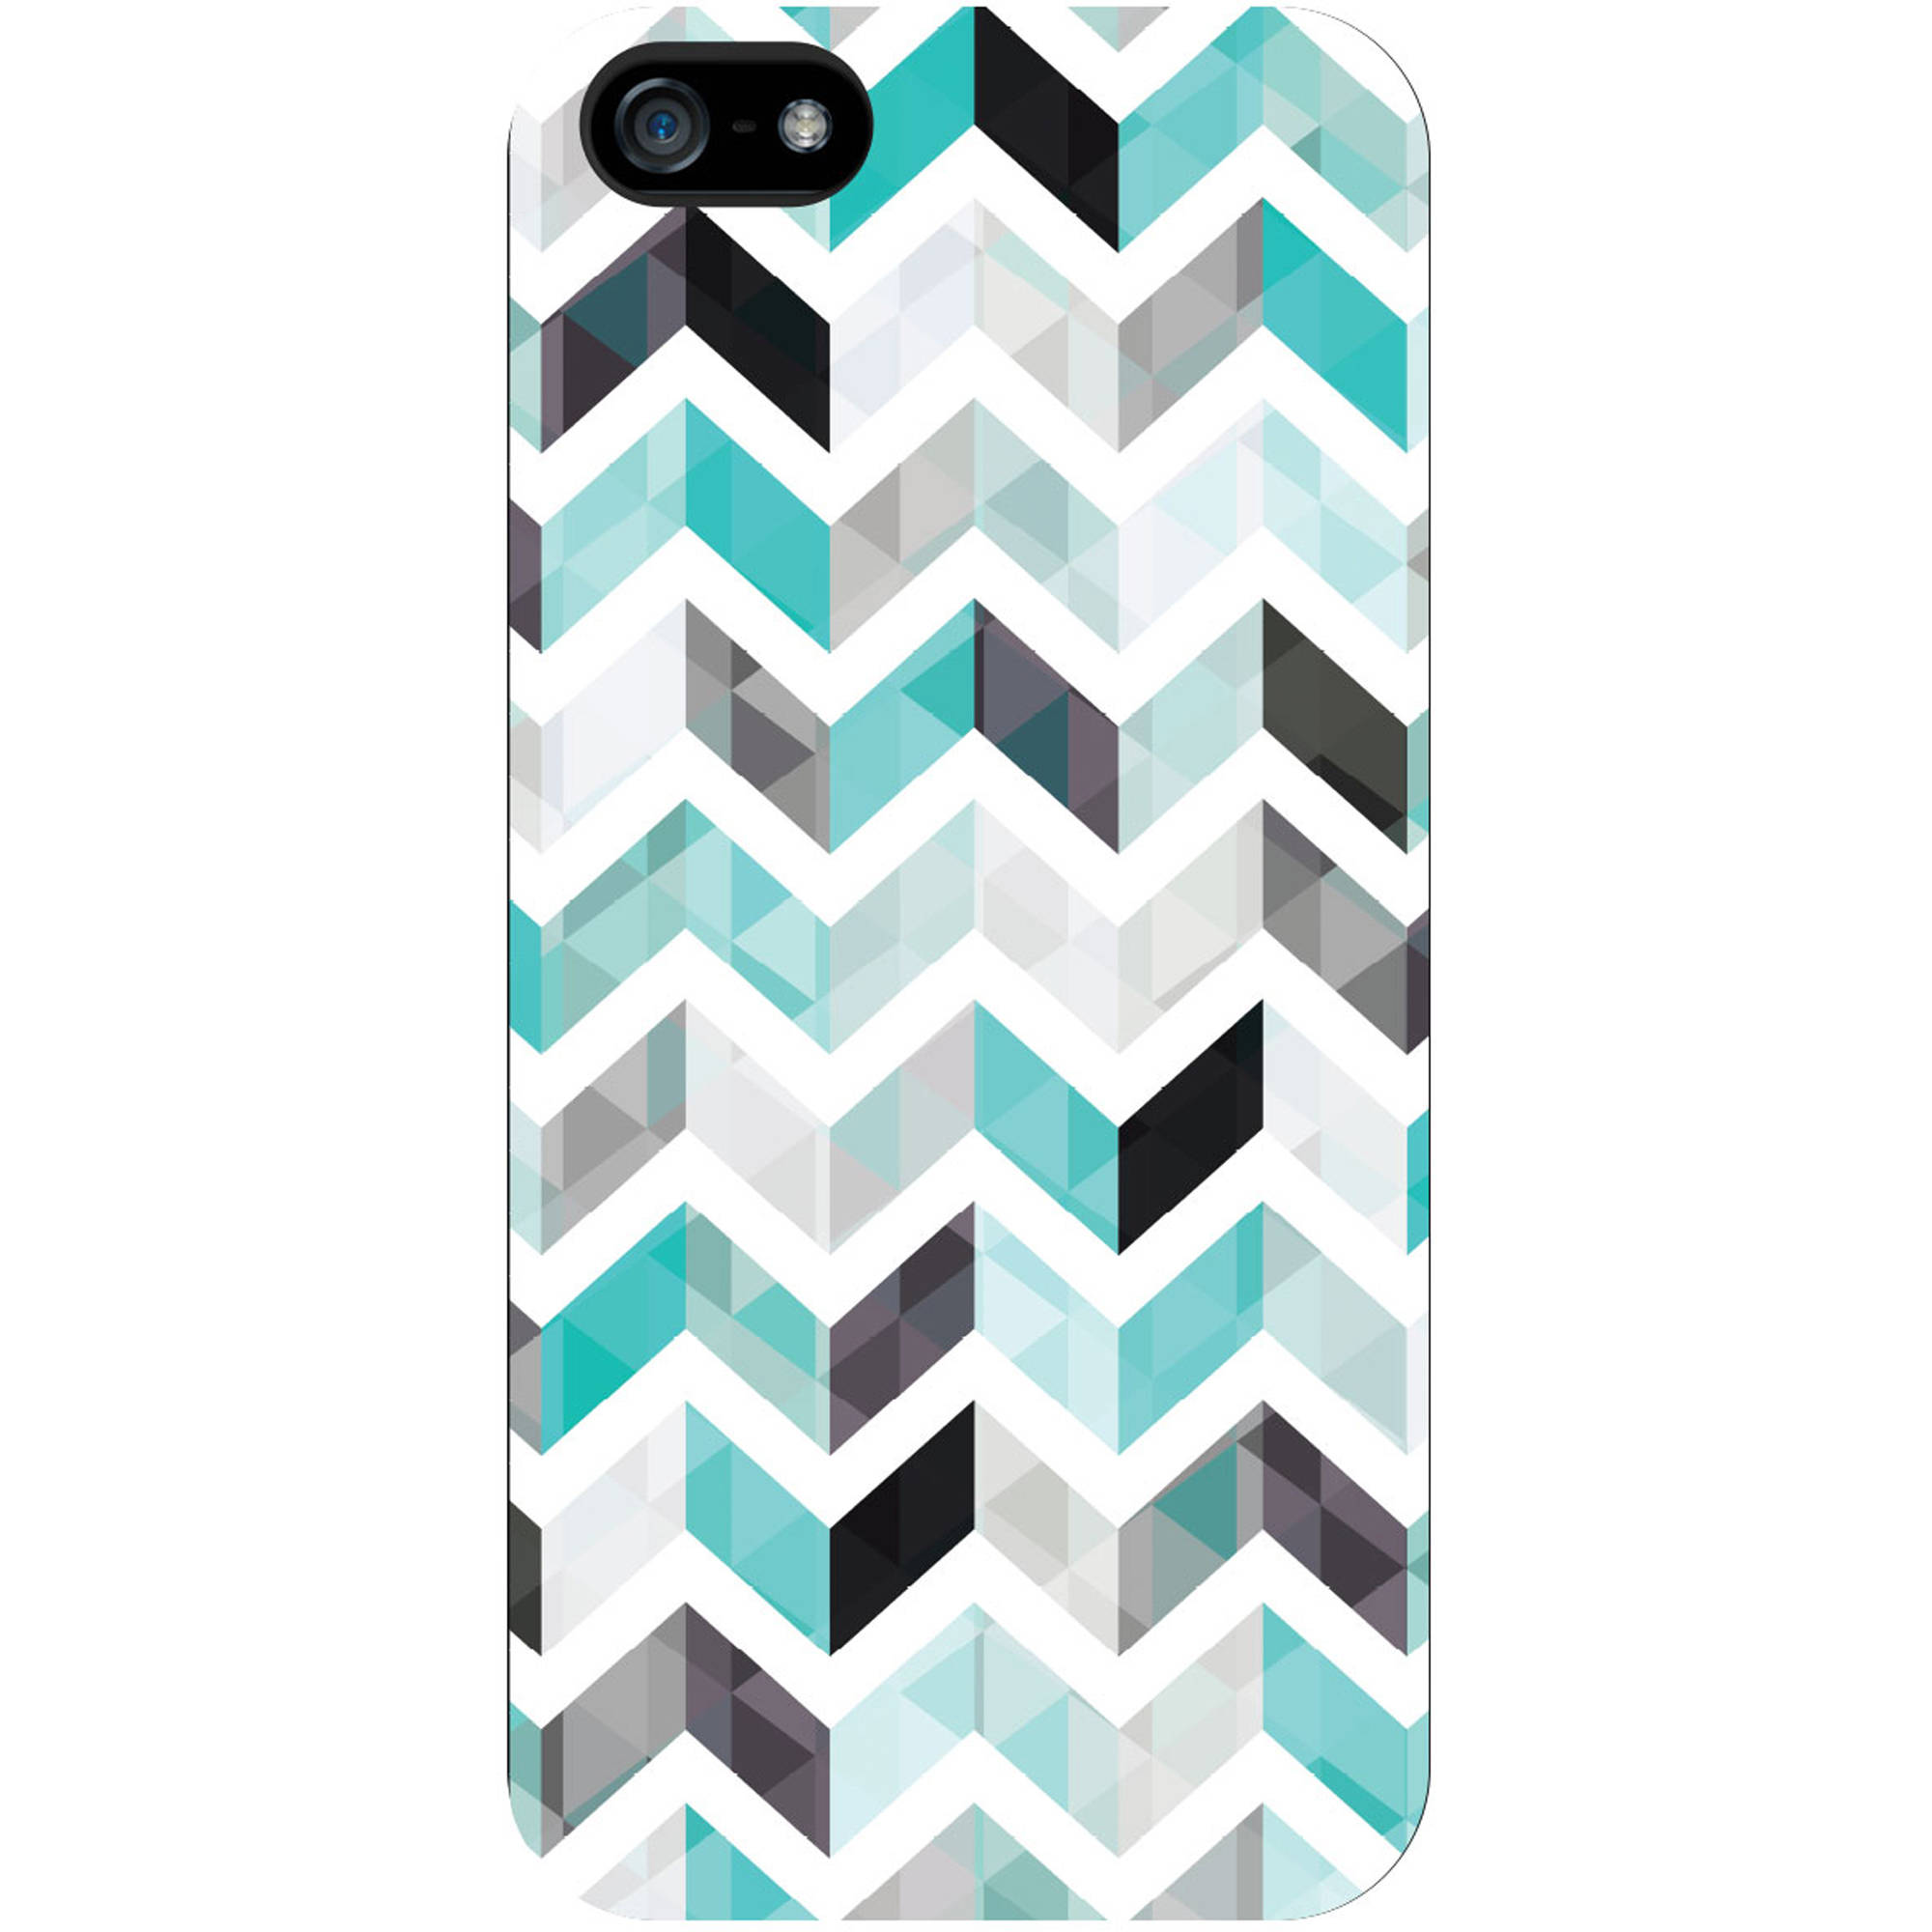 Centon On the Move Apple iPhone 5 White Glossy Case Ziggy Collection, Aqua